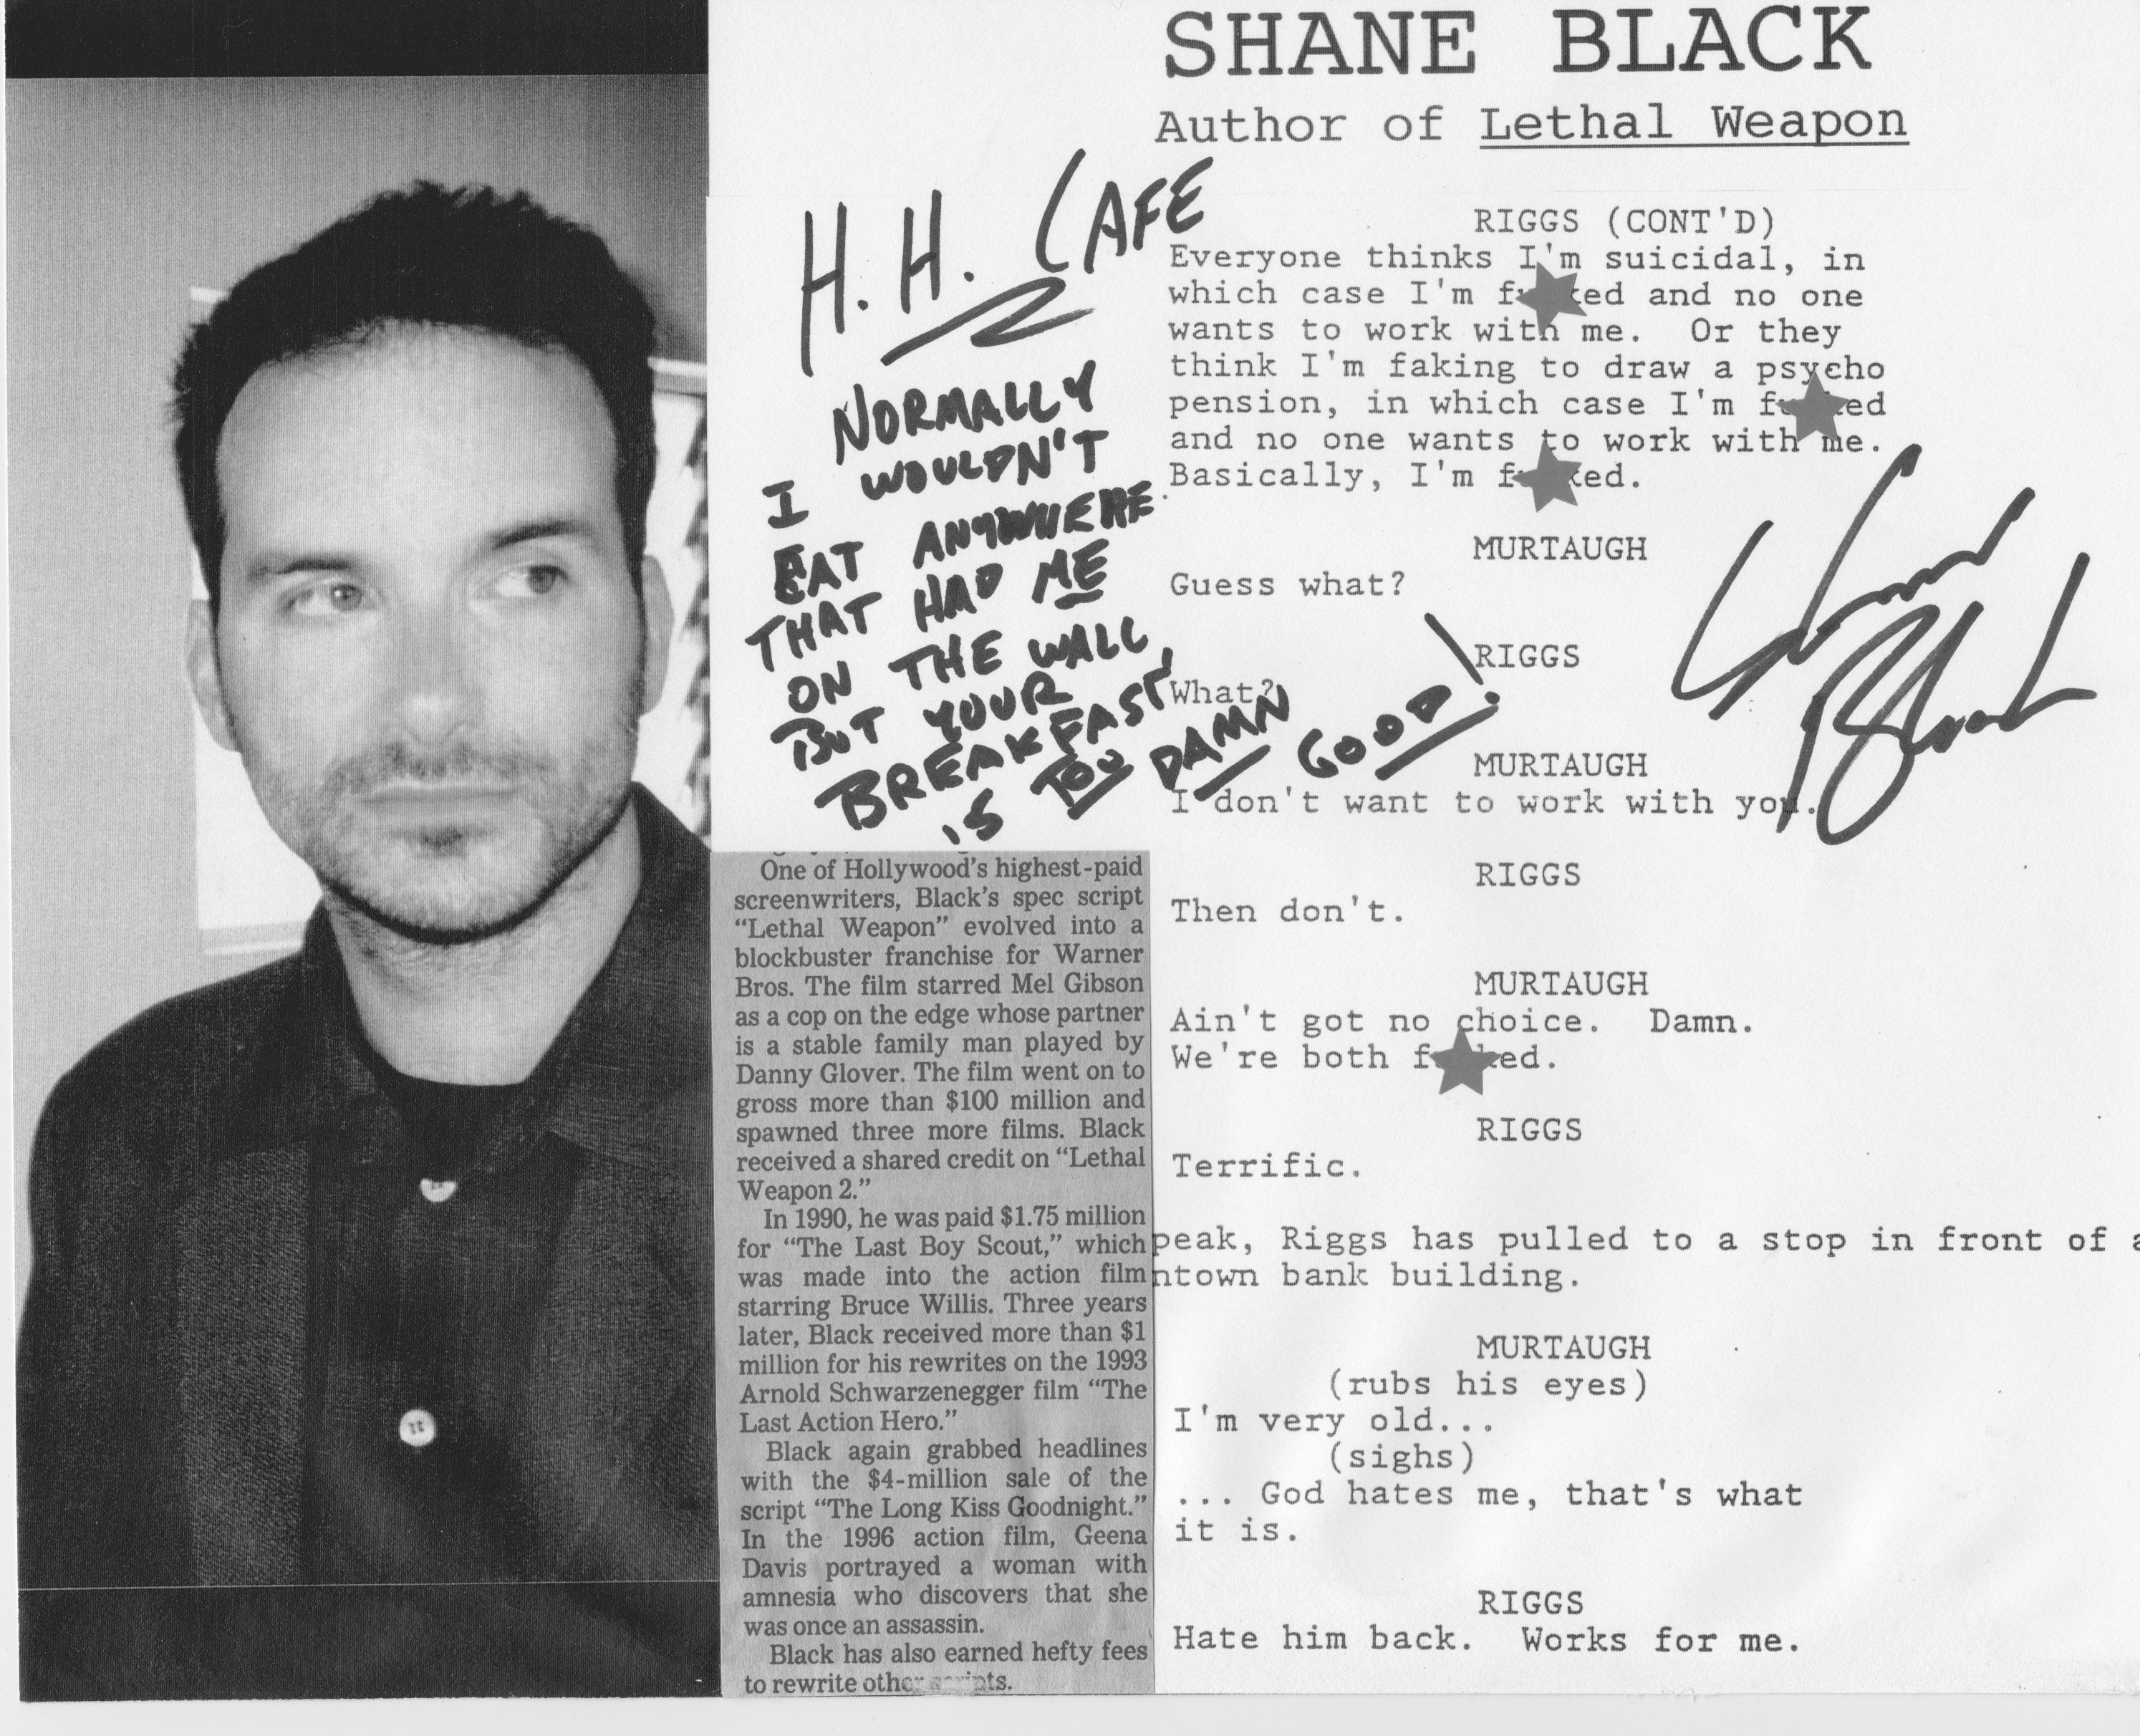 shane black quotesshane black twitter, shane black instagram, shane black predator, shane black drogheda, shane black quotes, shane black predator 4, shane black movies, shane black wiki, shane black script, shane black pdf, shane black imdb, shane black podcast, shane black net worth, shane black book, shane black interview, shane black property, shane black wikipedia, shane black facebook, shane black photography, shane black director